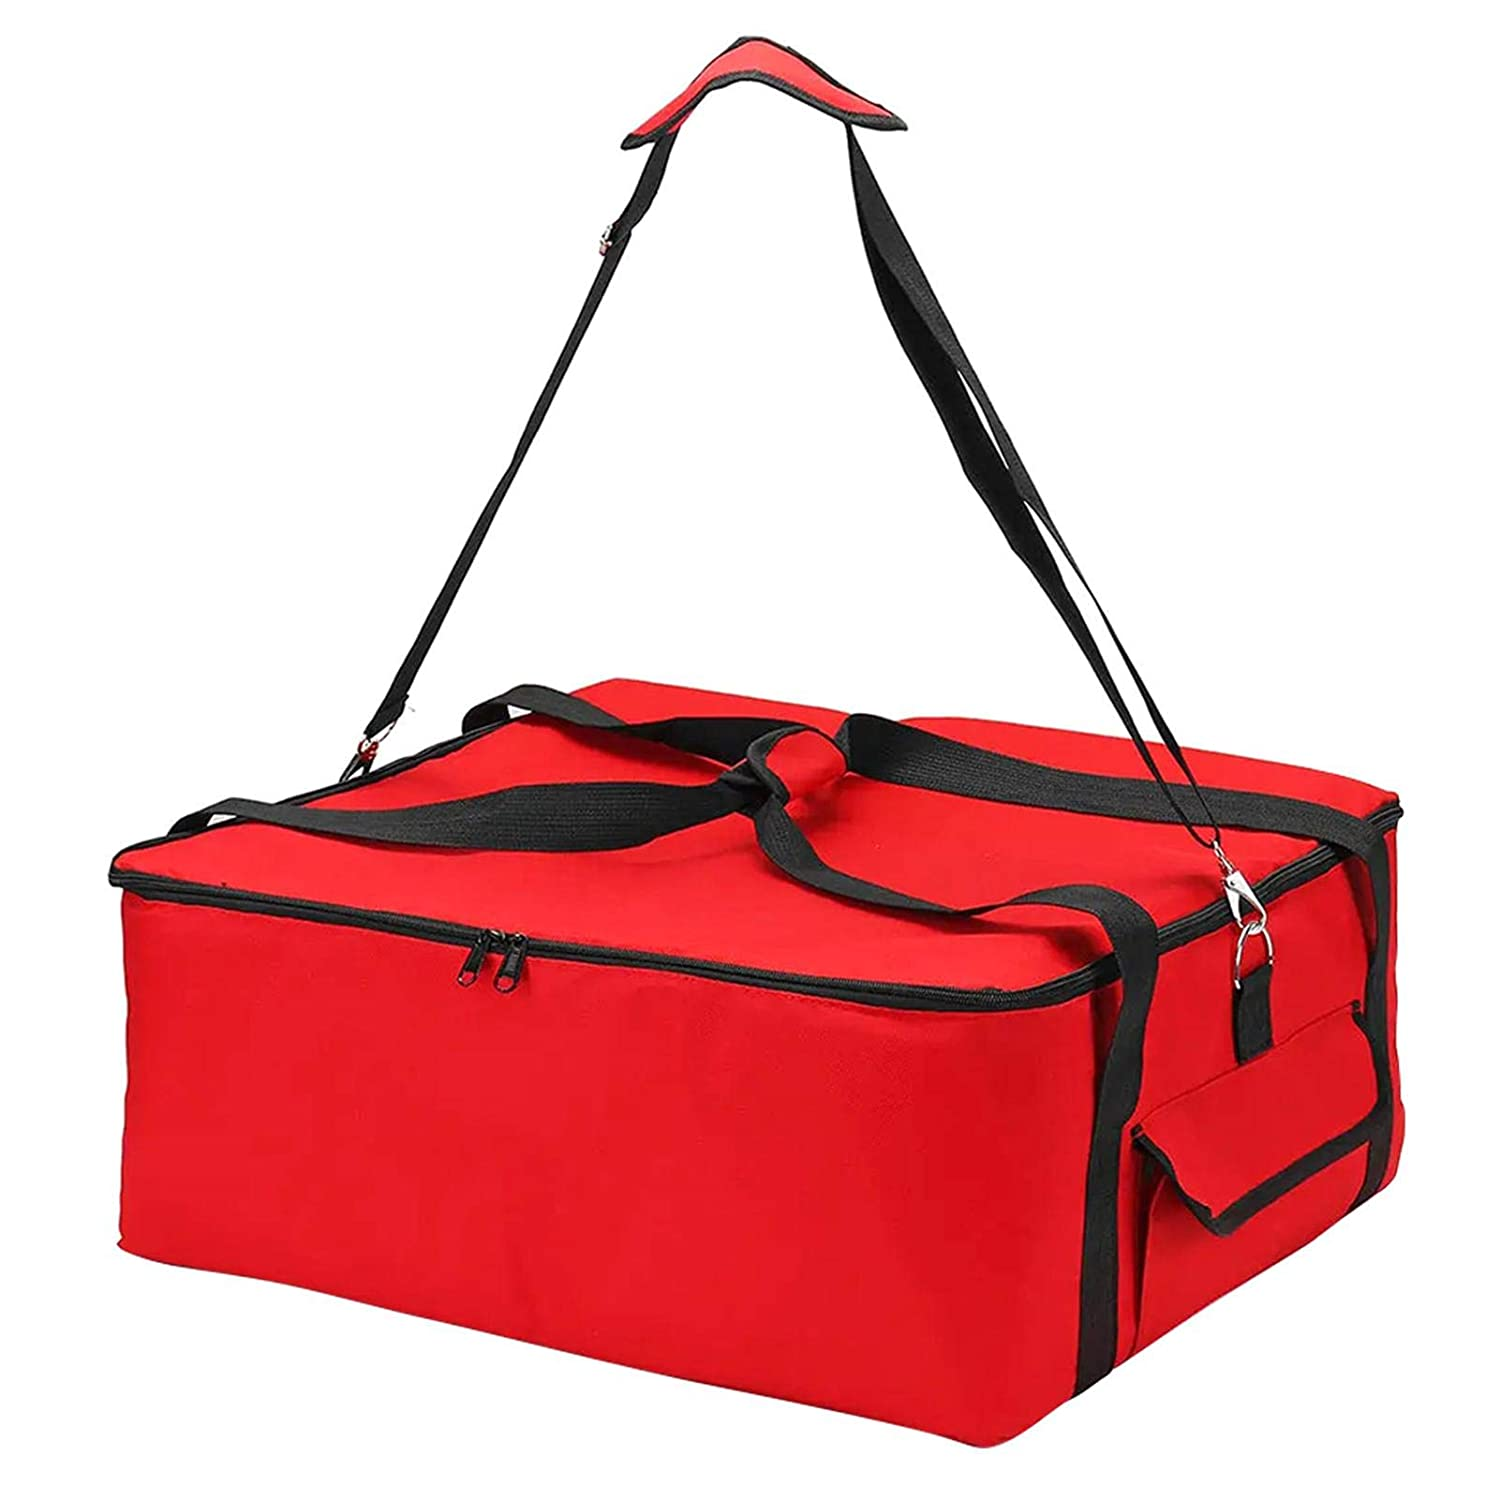 Insulated Luxury goods Pizza Popular brand in the world Delivery Bag 20inch Food P Foldaway